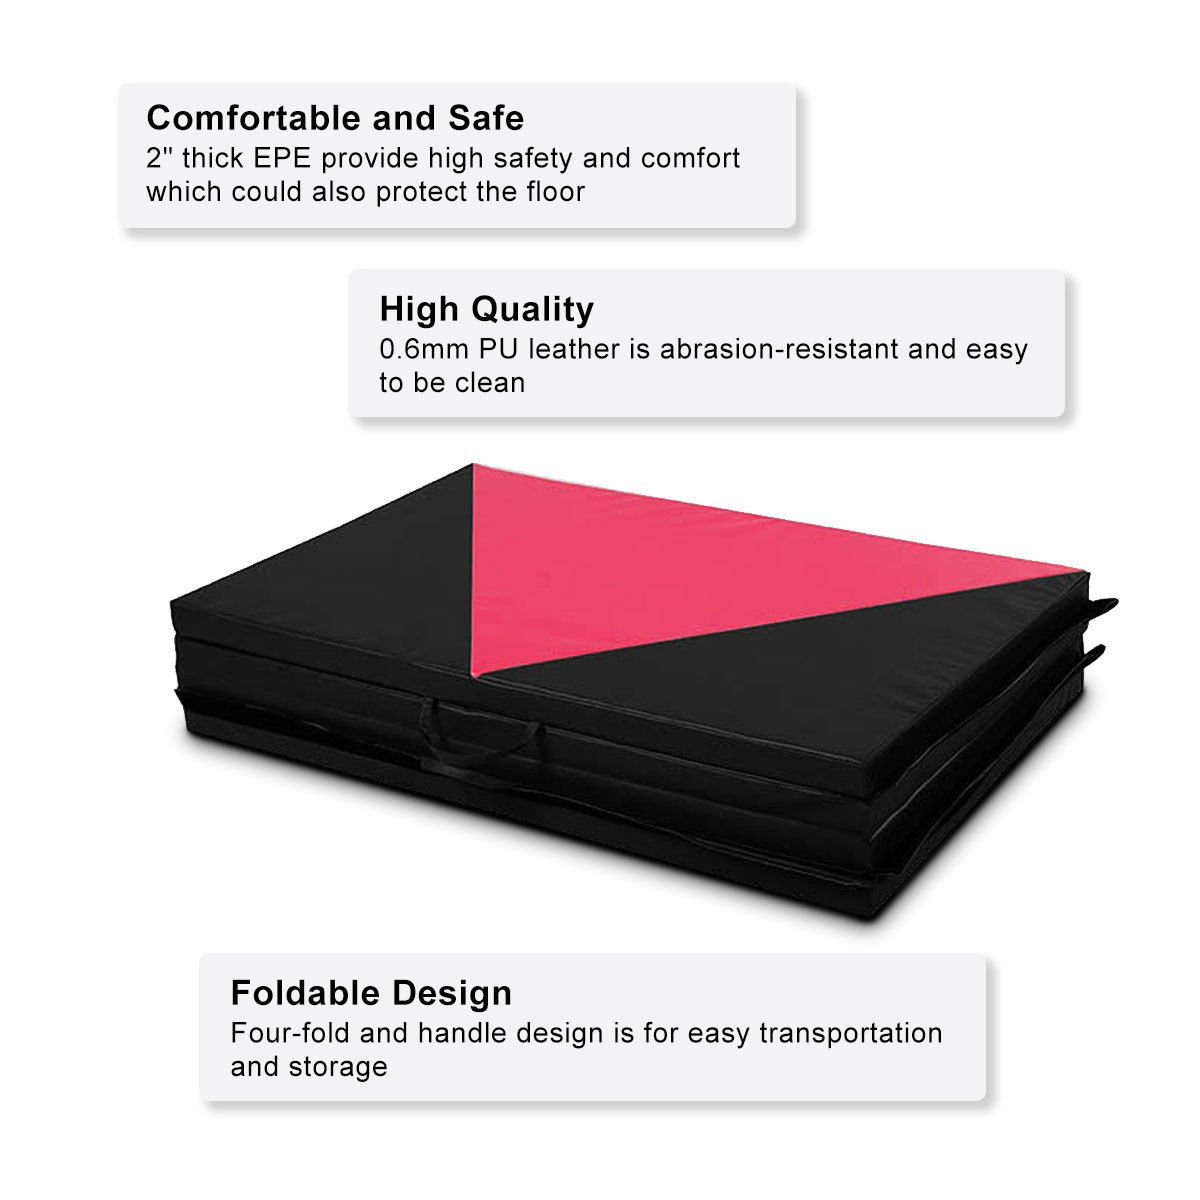 COSTWAY 4'X10'X2 Gymnastics Mat Folding Panel Thick Gym Fitness Exercise Pink/Black New by COSTWAY (Image #5)